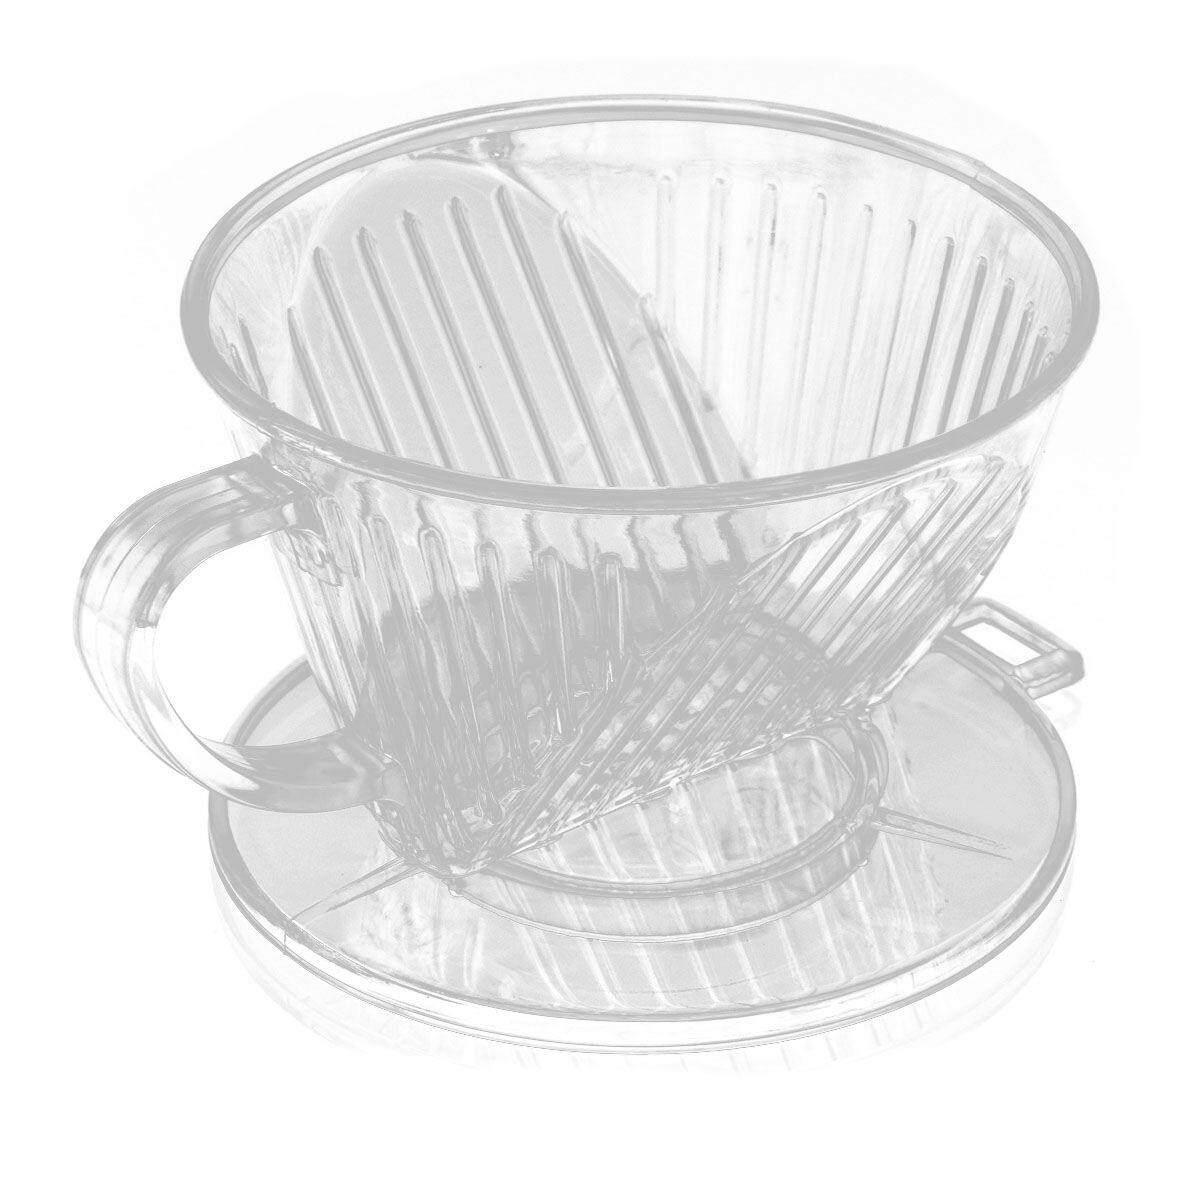 Clear Coffee Filter Cup Cone Maker Brewer Holder Plastic Reusable By Happyang.